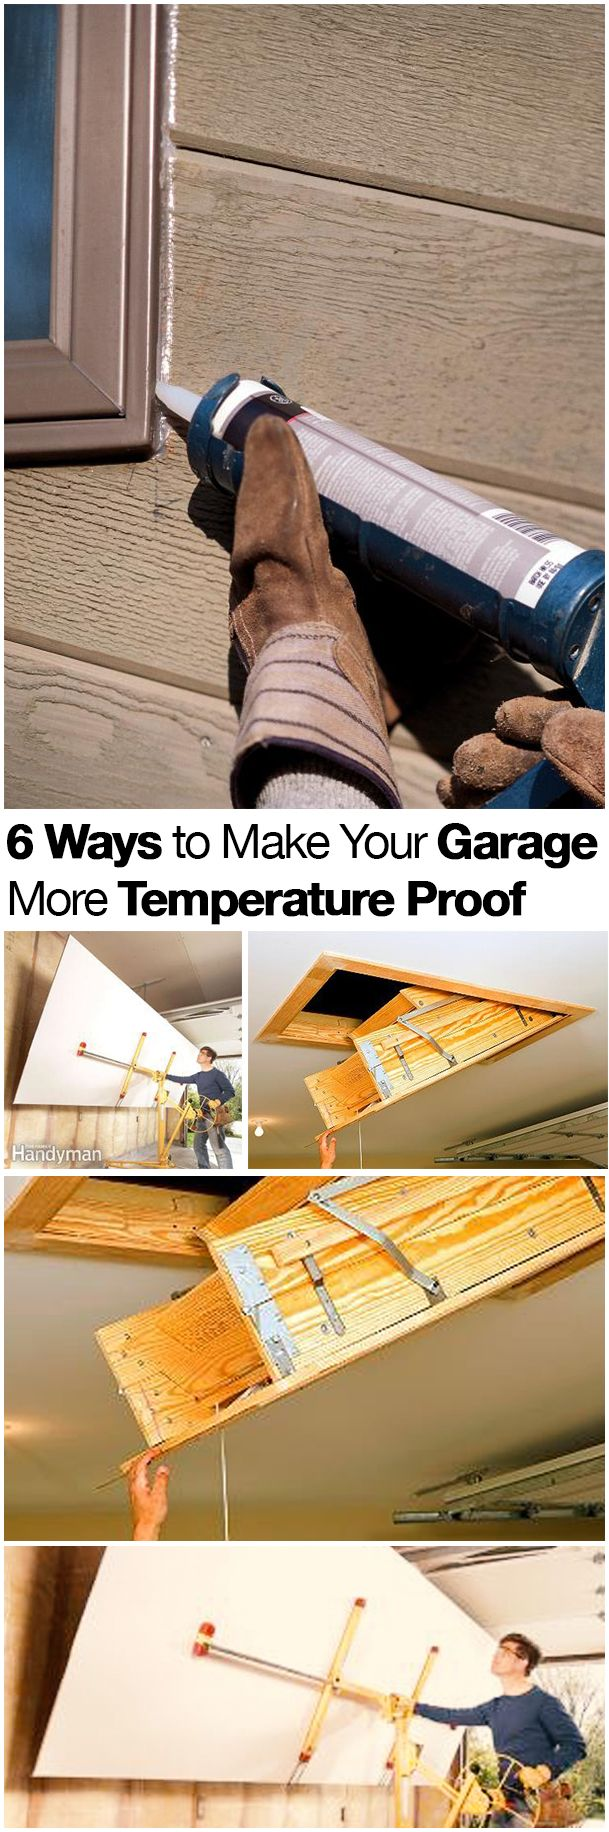 6 Ways to temperature proof your garage. Some great tips to help keep your garage workshop comfortable and functioning more of the year. #workshop #garage #tips